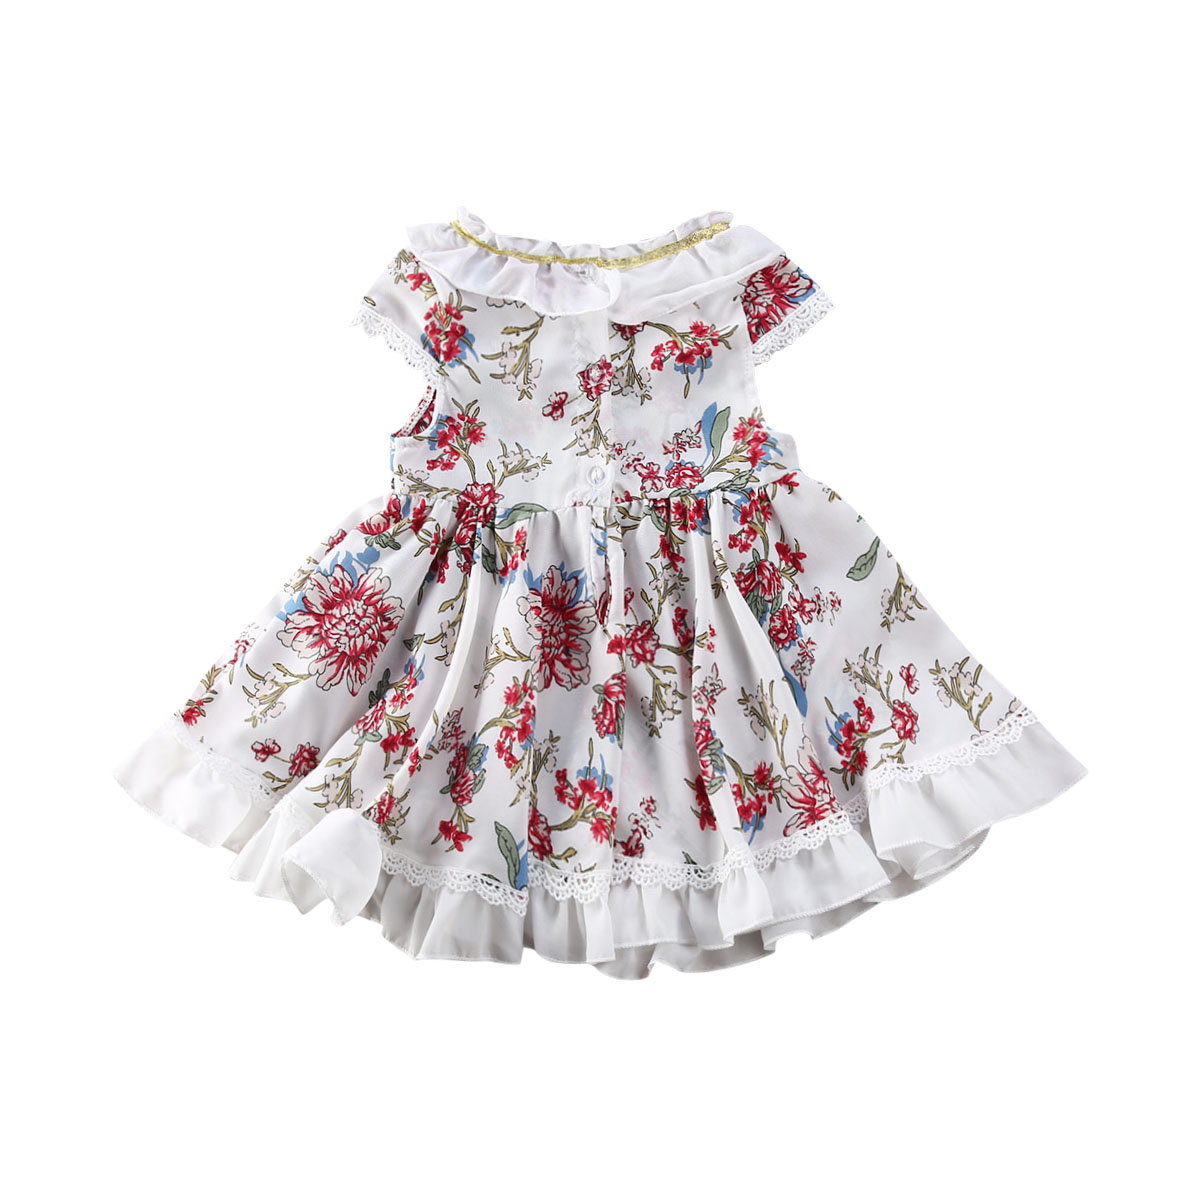 KaiCran Fashion Toddler Baby Girls Striped Sleeveless Floral Print Sling Dress Adorable Outfits Clothes